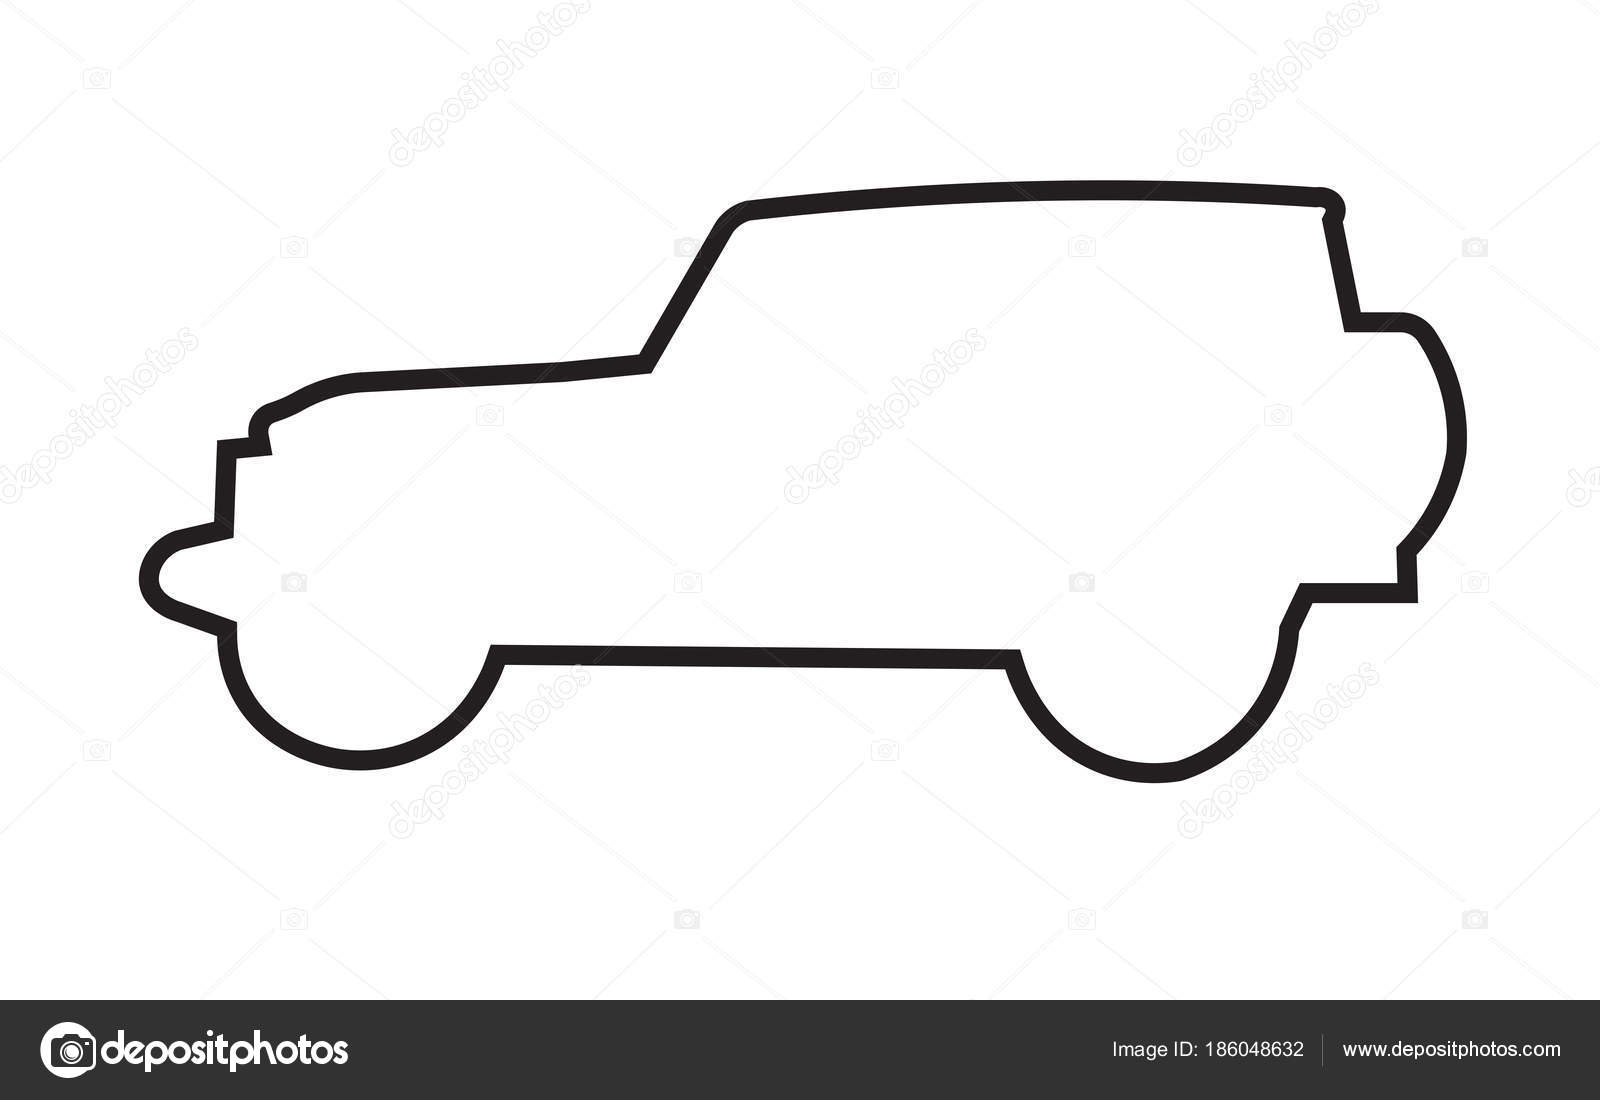 Stock Illustration Jeep Wrangler Silhouette Outline On also File Single Cylinder T Head engine  Autocar Handbook  13th ed  1935 further Jeep Logo Wallpapers besides 250780823102 likewise Wrangler. on cartoon wrangler jeep